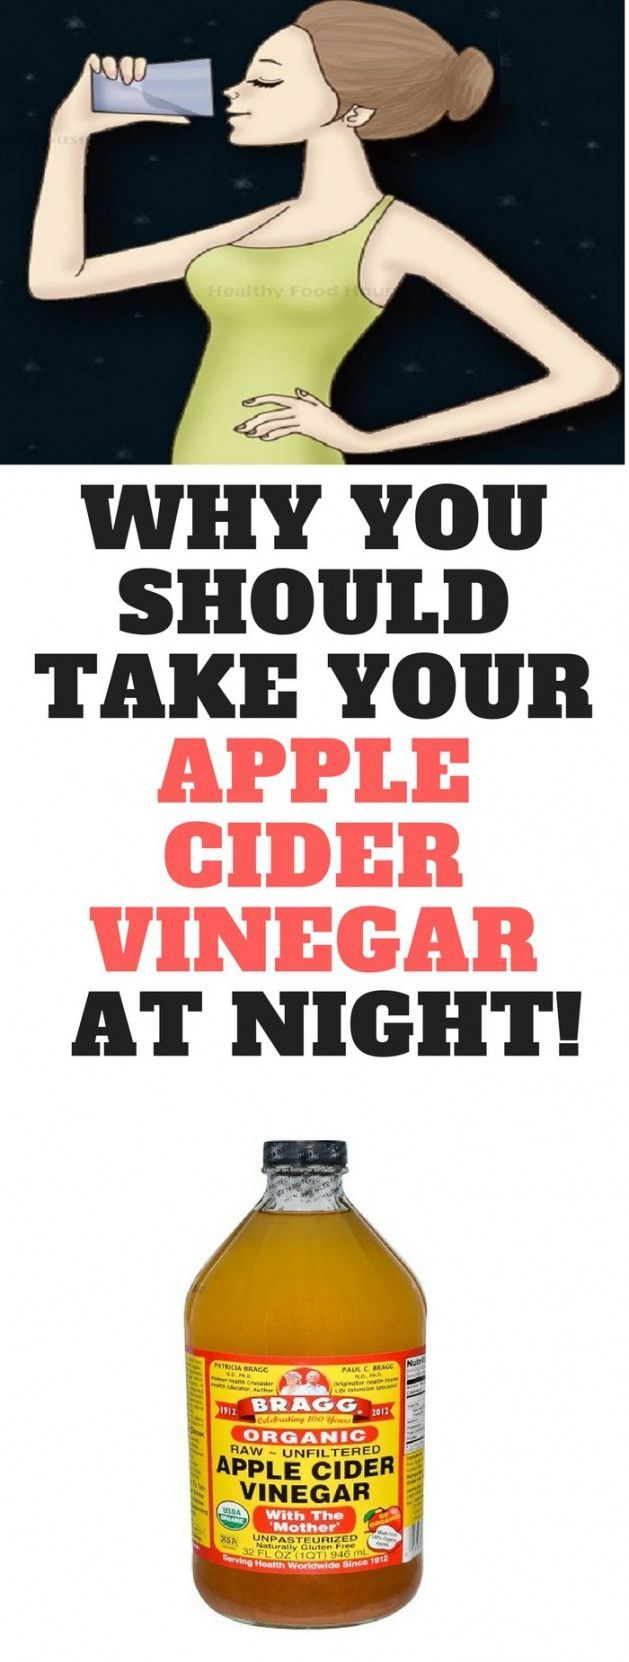 Apple cider vinegar has a wide range of uses as it offers numerous health benefits including weight loss raising the beneficial bacteria in the gut and balancing the pH levels of the body. #applecider #night #applecidervinegarbenefits